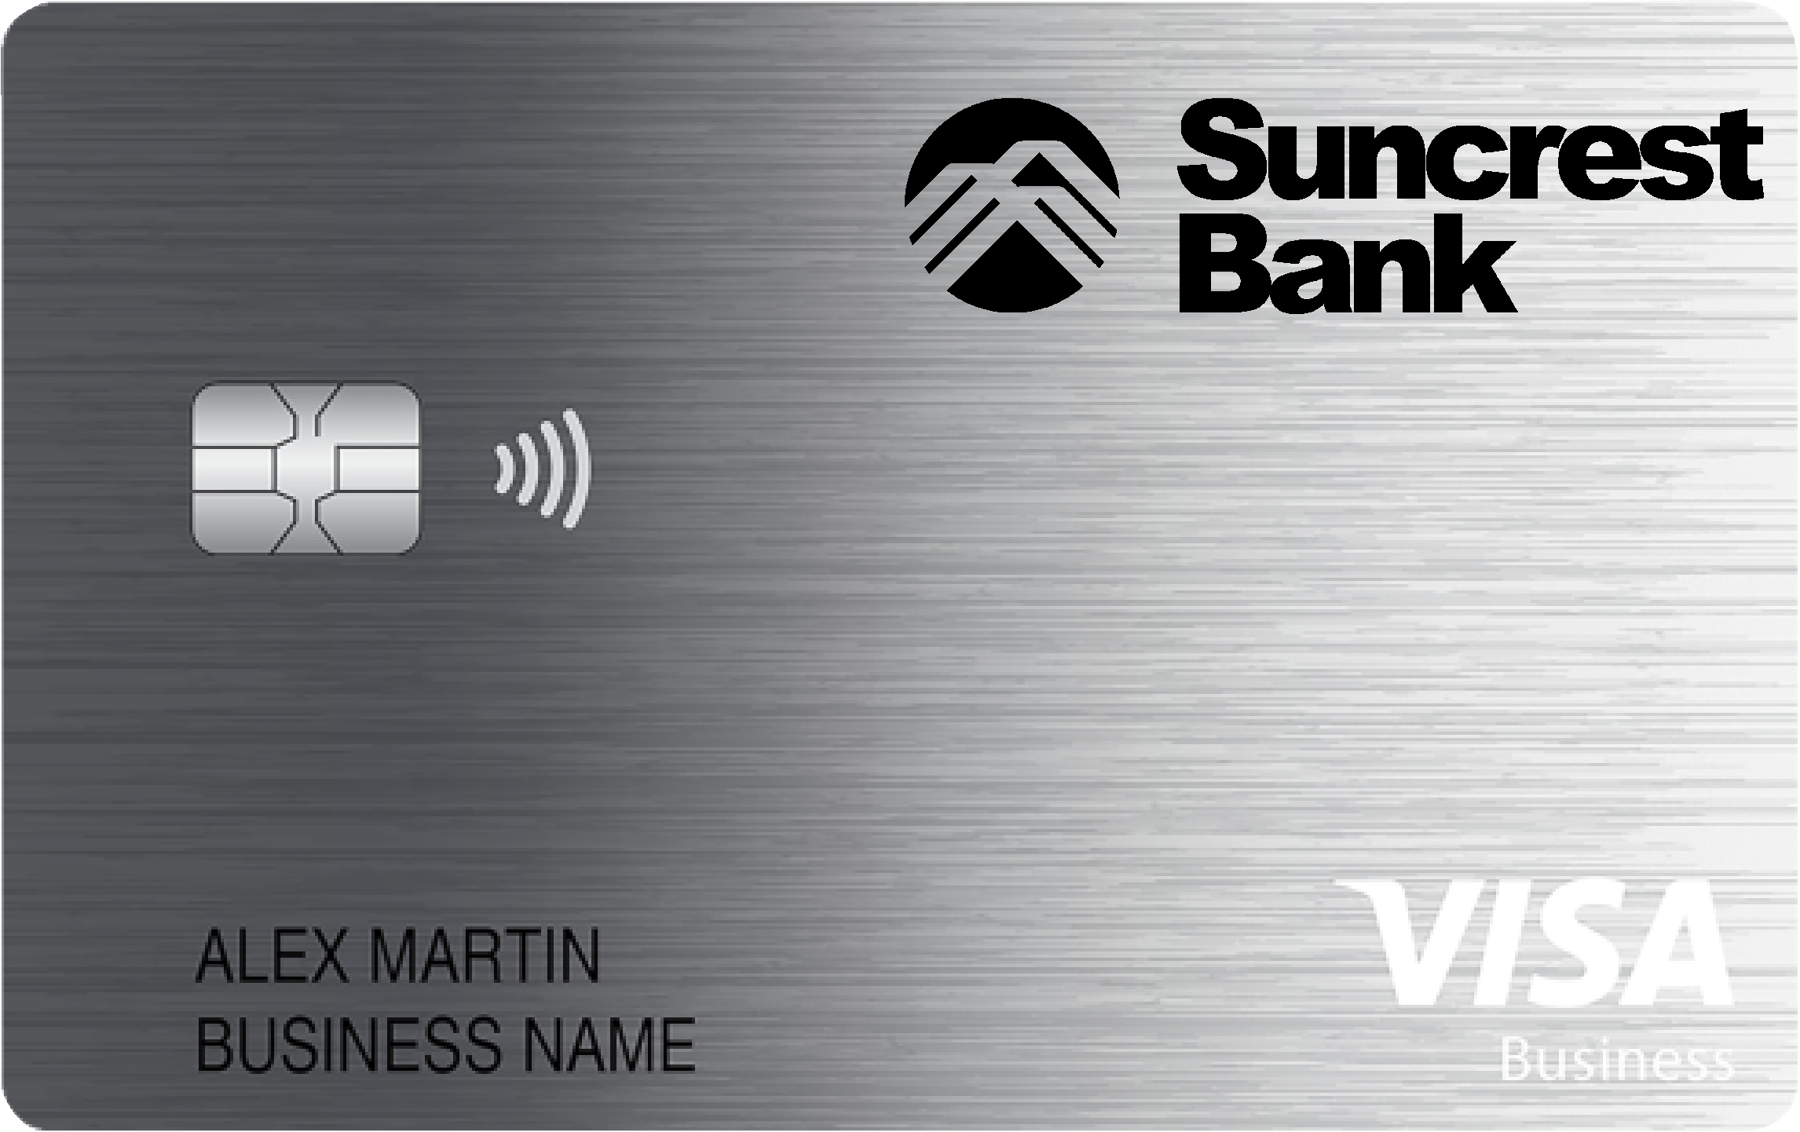 Suncrest Bank Business Platinum Visa® Credit Card